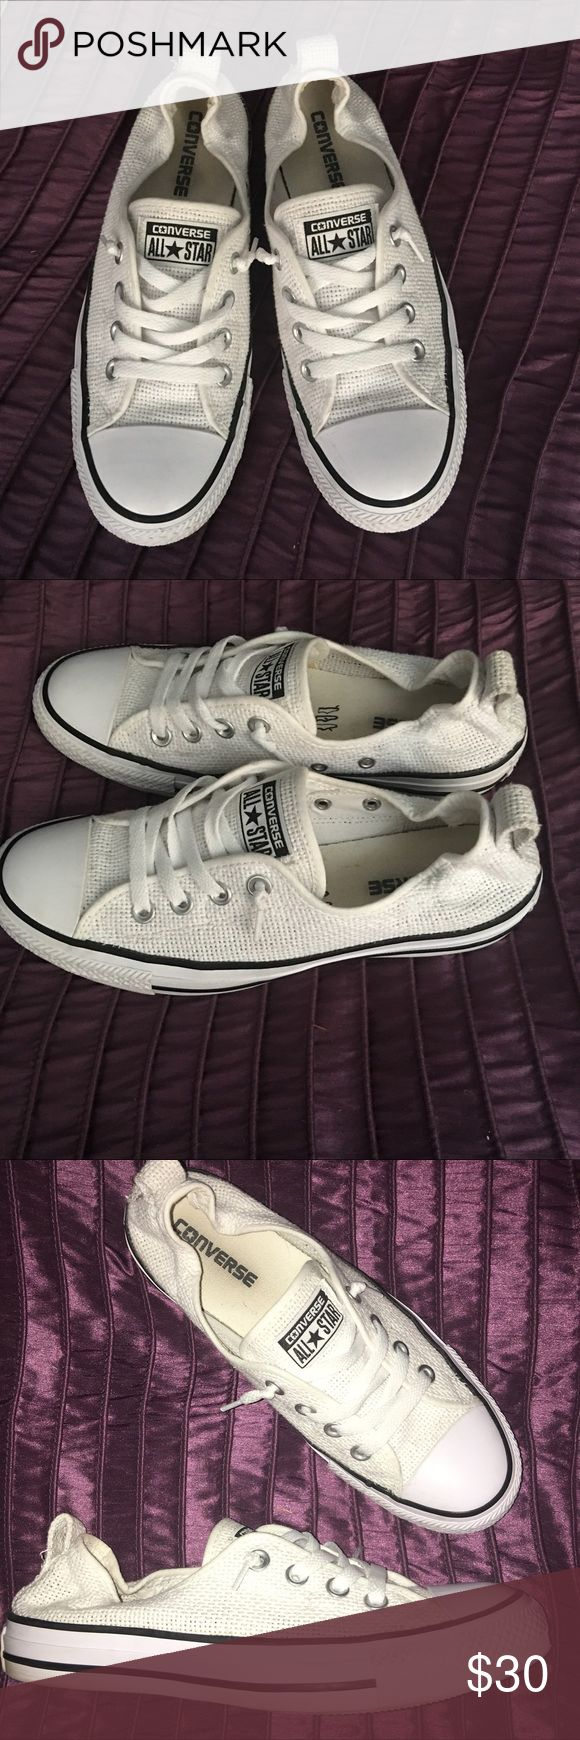 Womens Converse All Star Slip These are super cute white converse that you can just skip right into and wear or pull the back up and just like regular converse. They are a real tight woven mesh. Great for summer with any outfit. Converse Shoes Sneakers